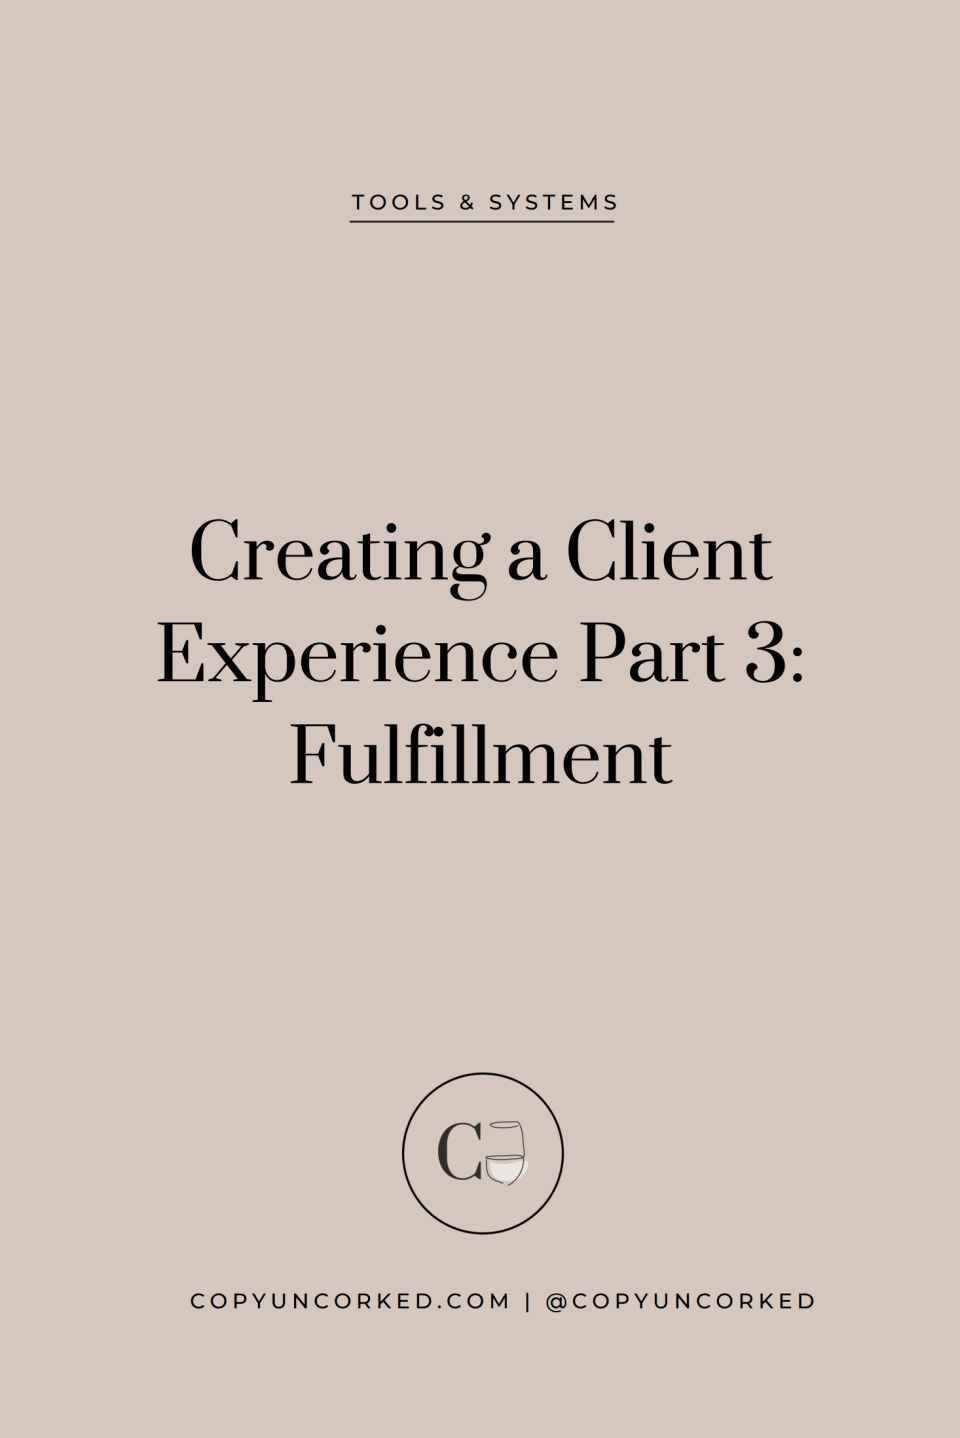 Creating a Client Experience - Part 3: Fulfillment - copyuncorked.com